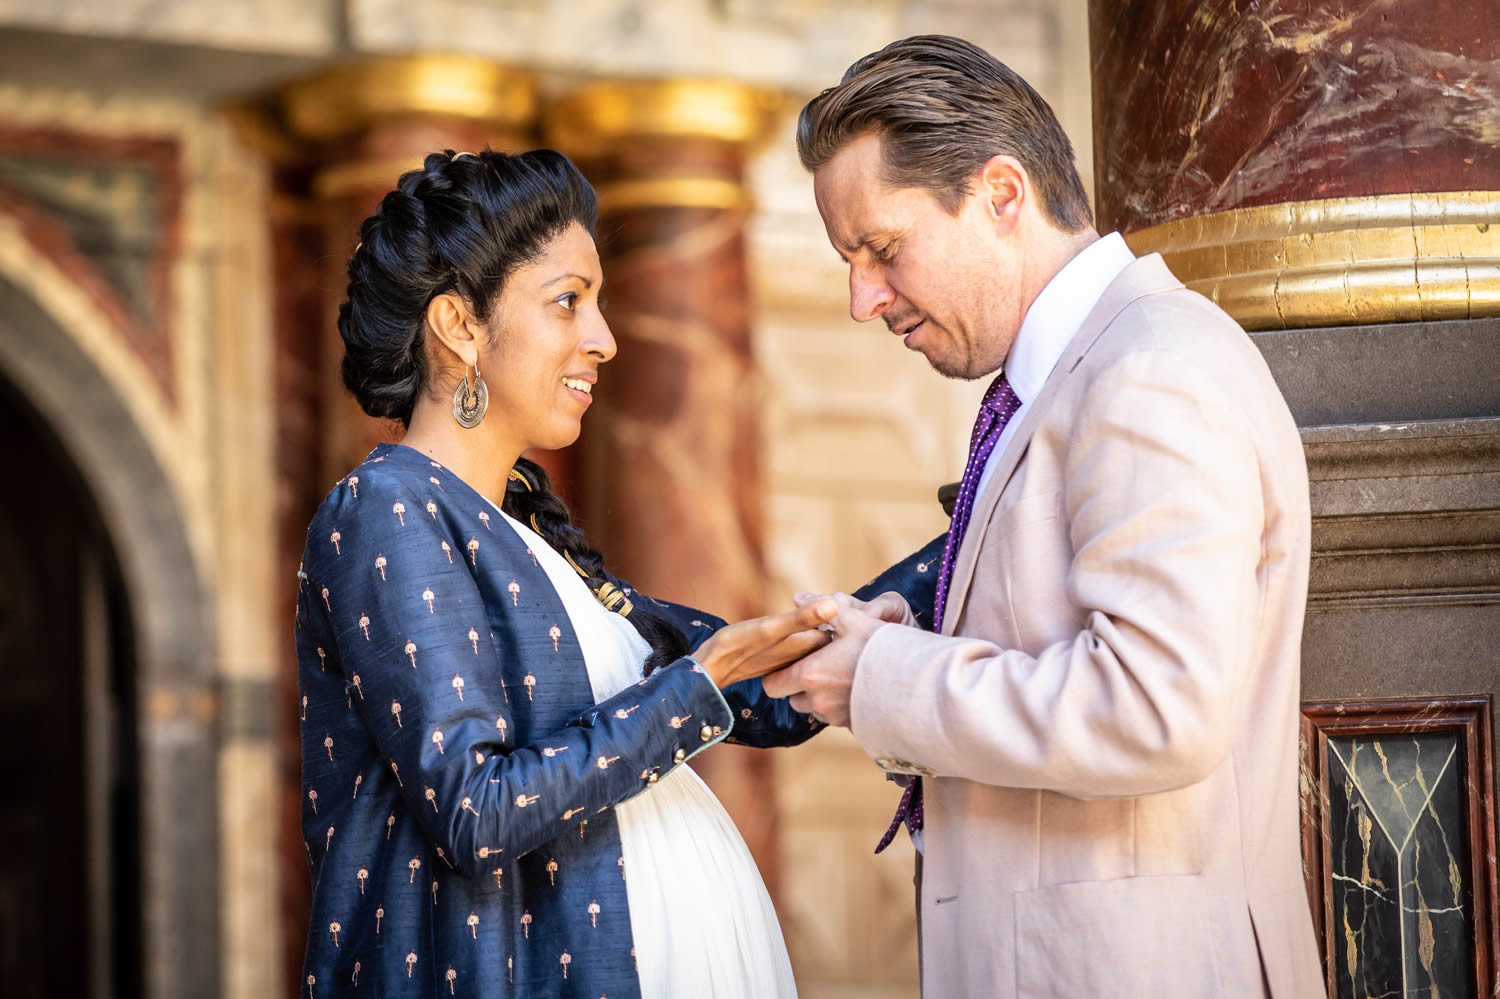 Image 1 of the The Merry Wives of Windsor: Live from Shakespeare's Globe gallery